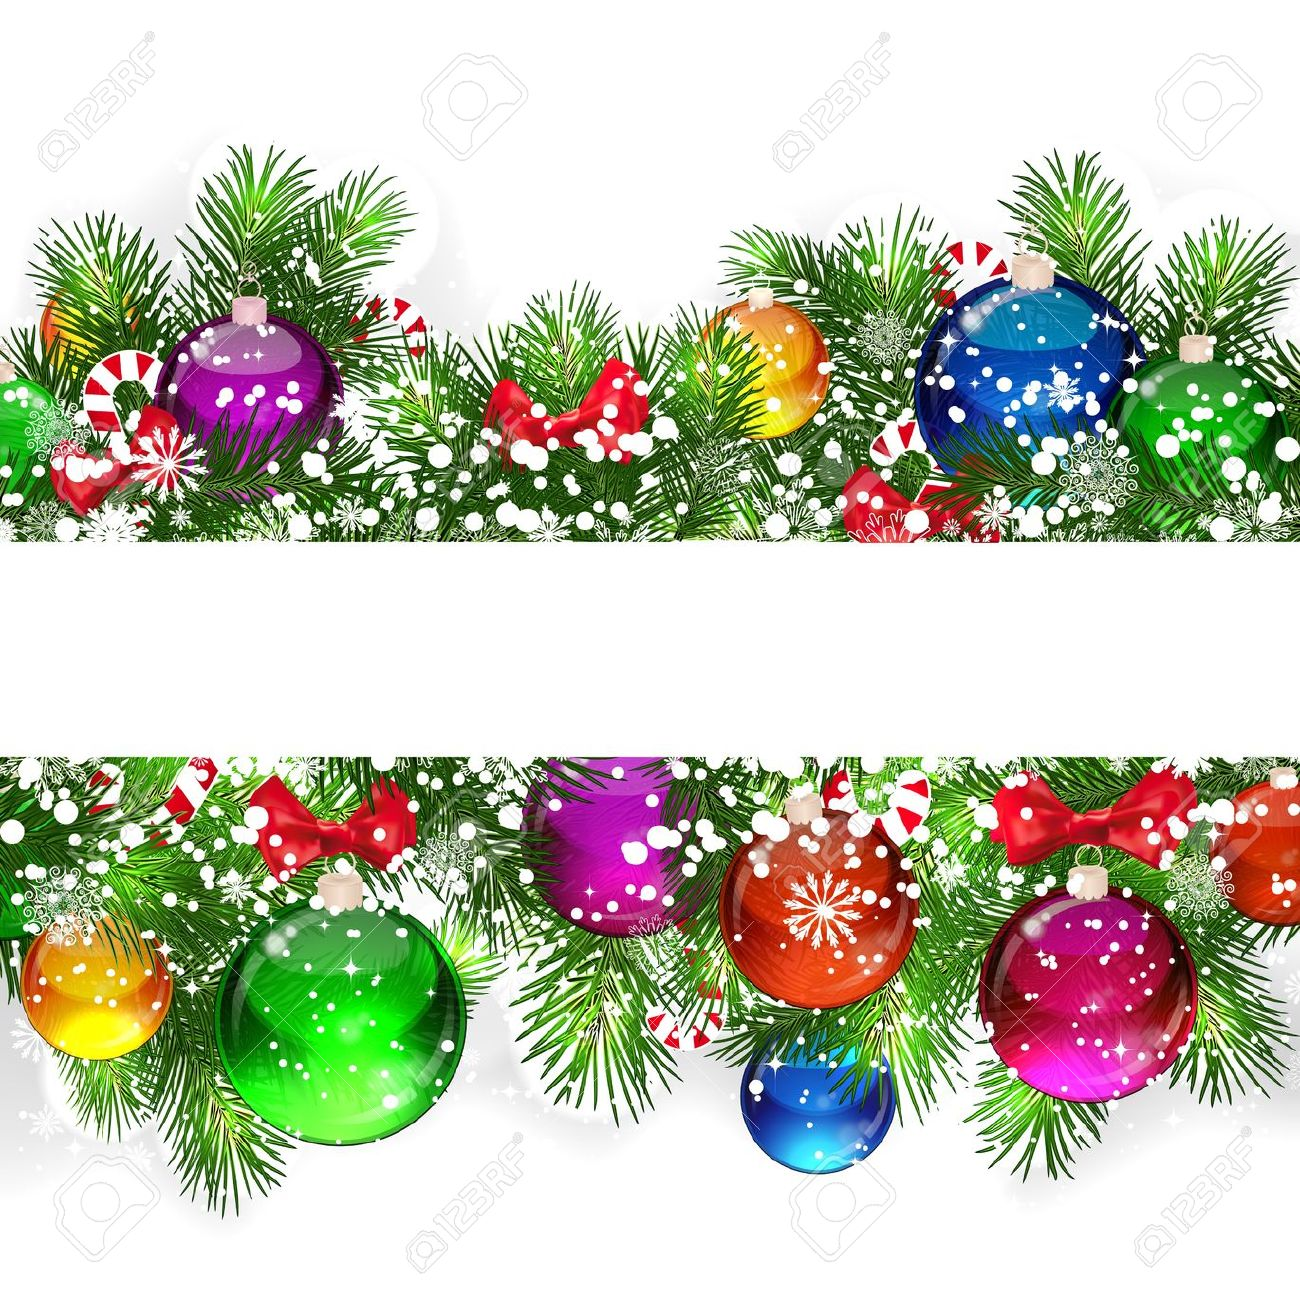 Holiday Banner Clip Art.